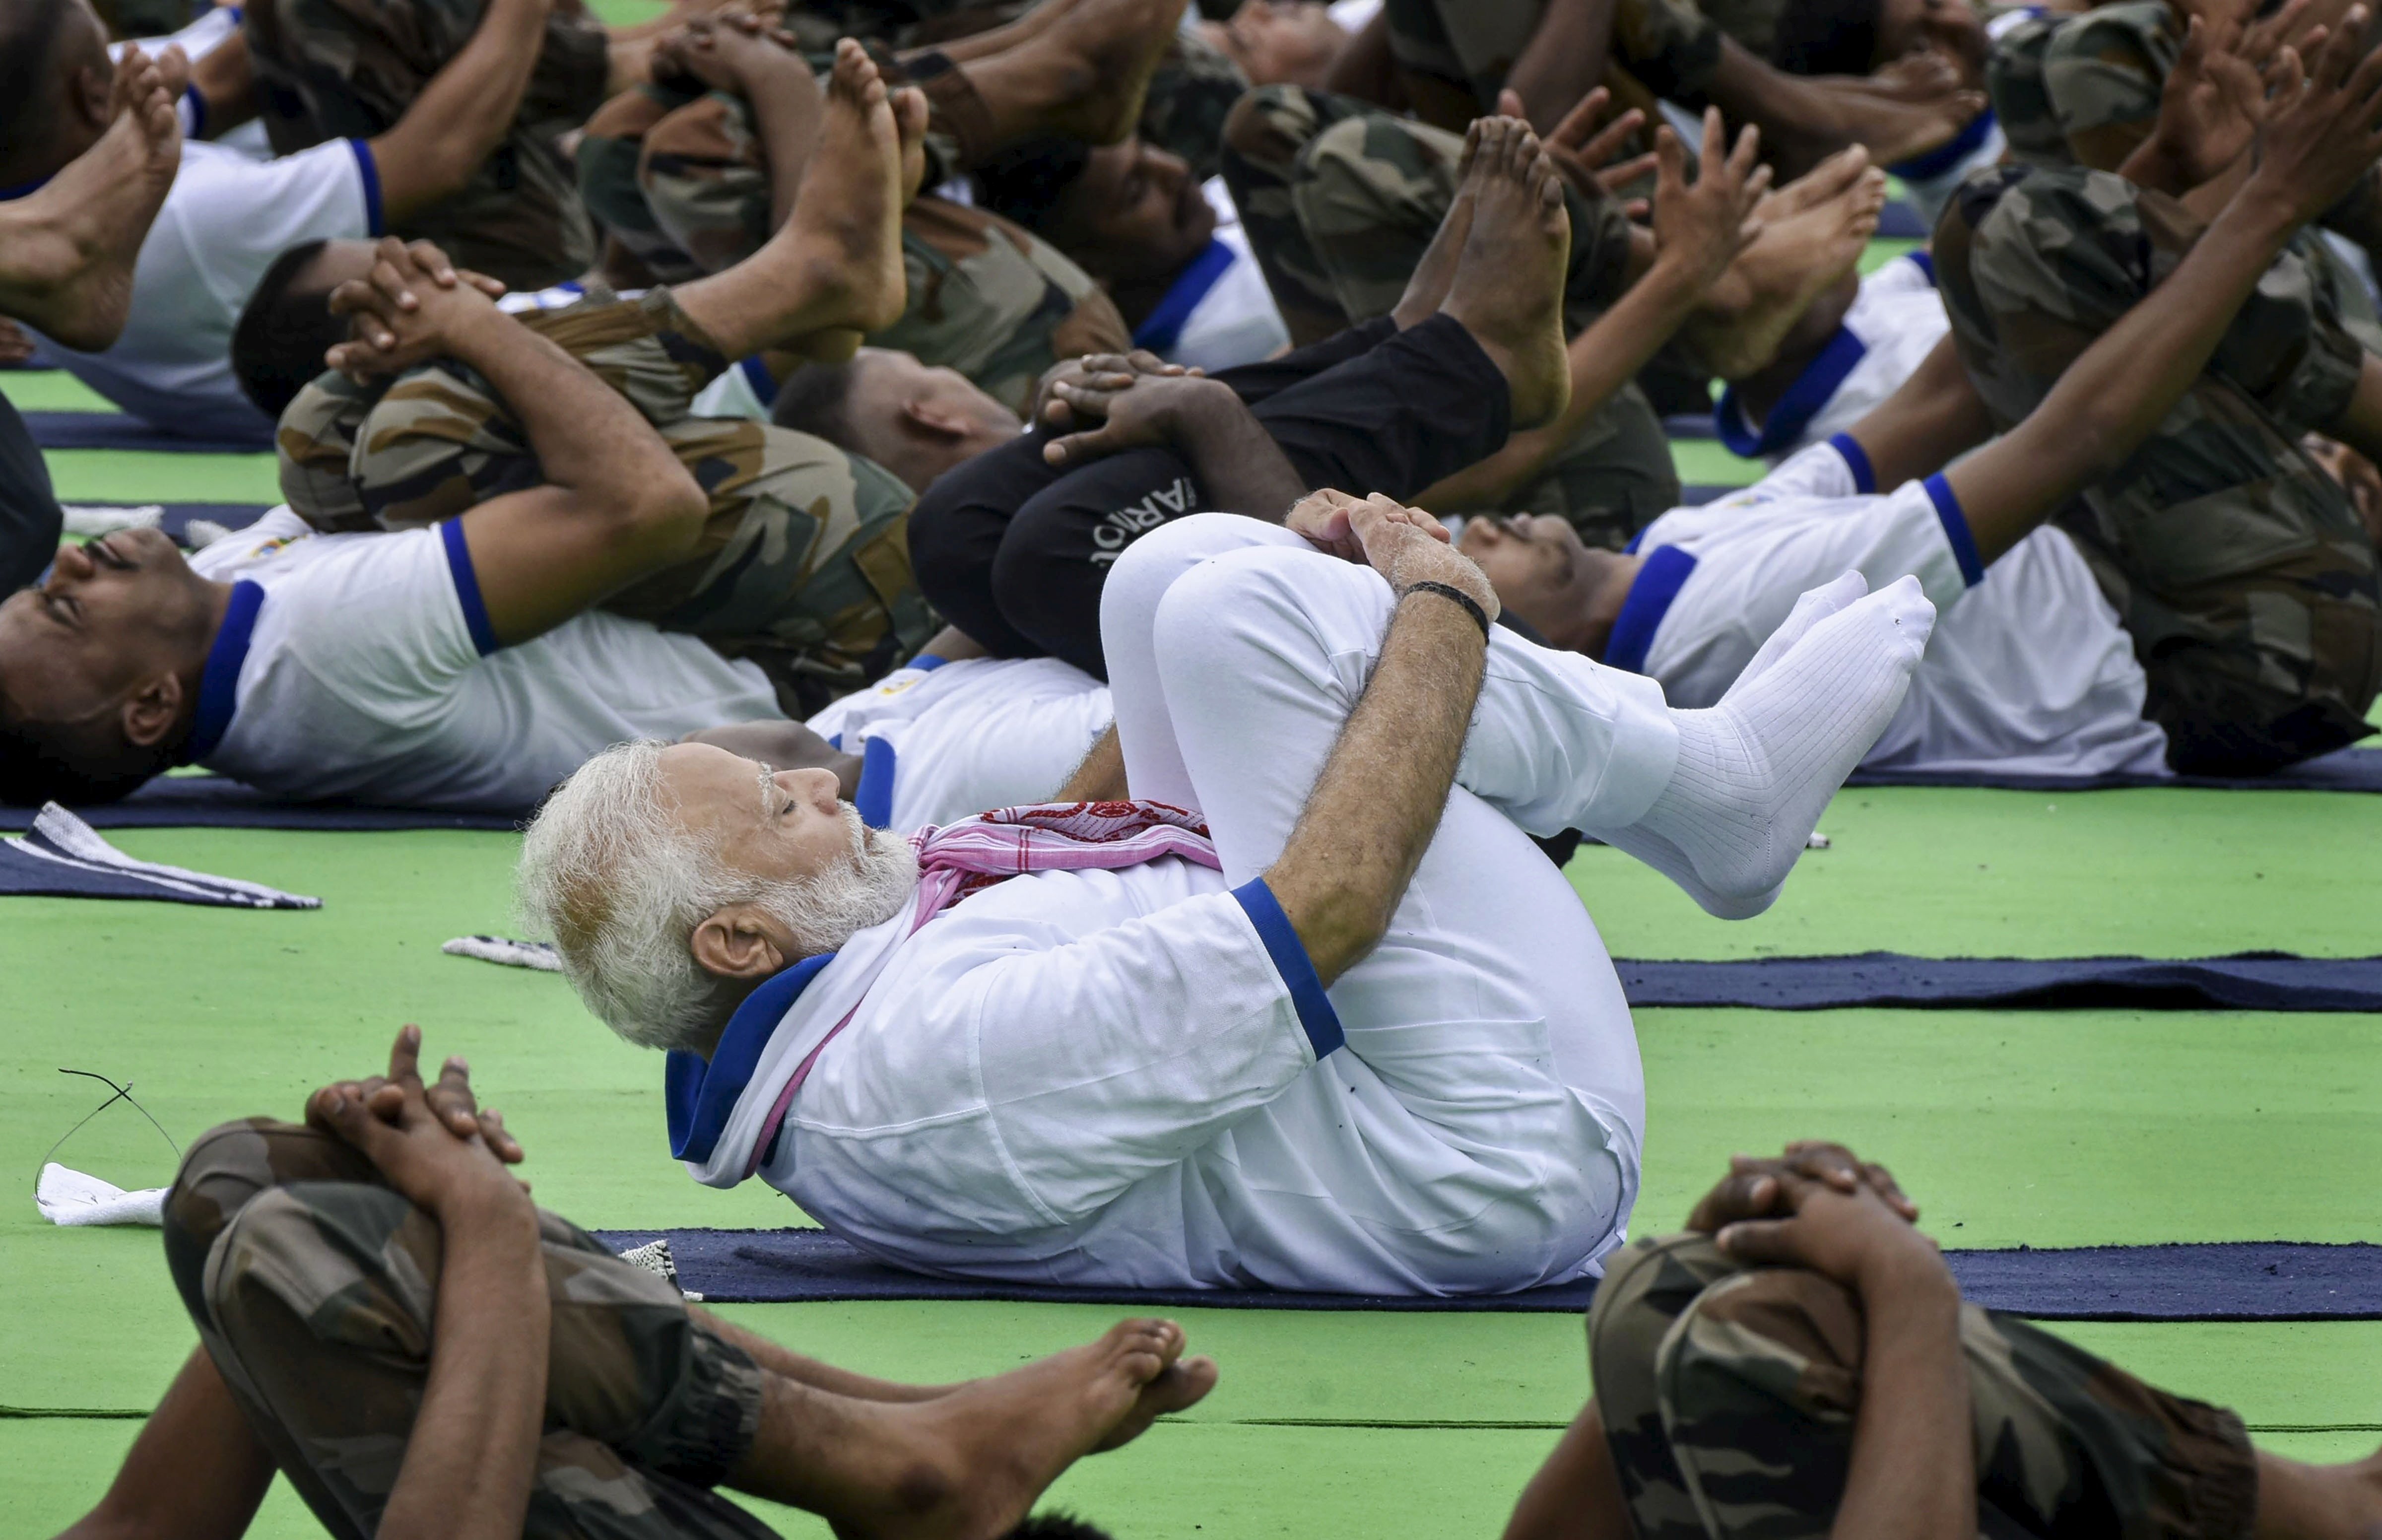 Prime Minister Narendra Modi at the International Day of Yoga event in Ranchi on June 21.